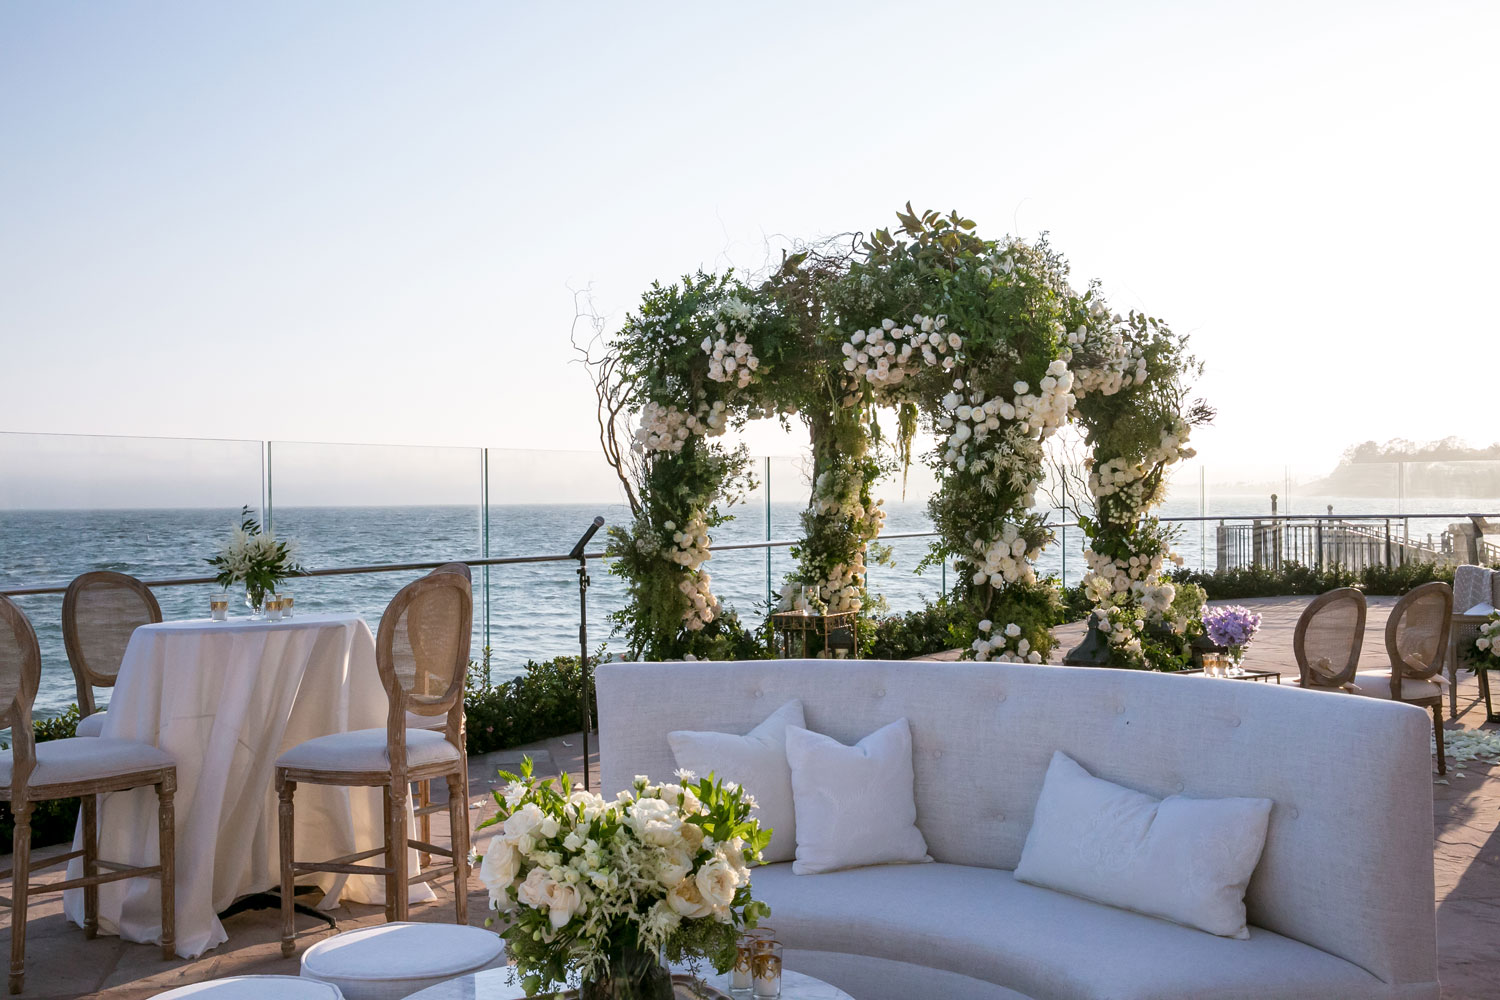 rooftop wedding with lounge area on one side and chuppah made with lush greenery on the other